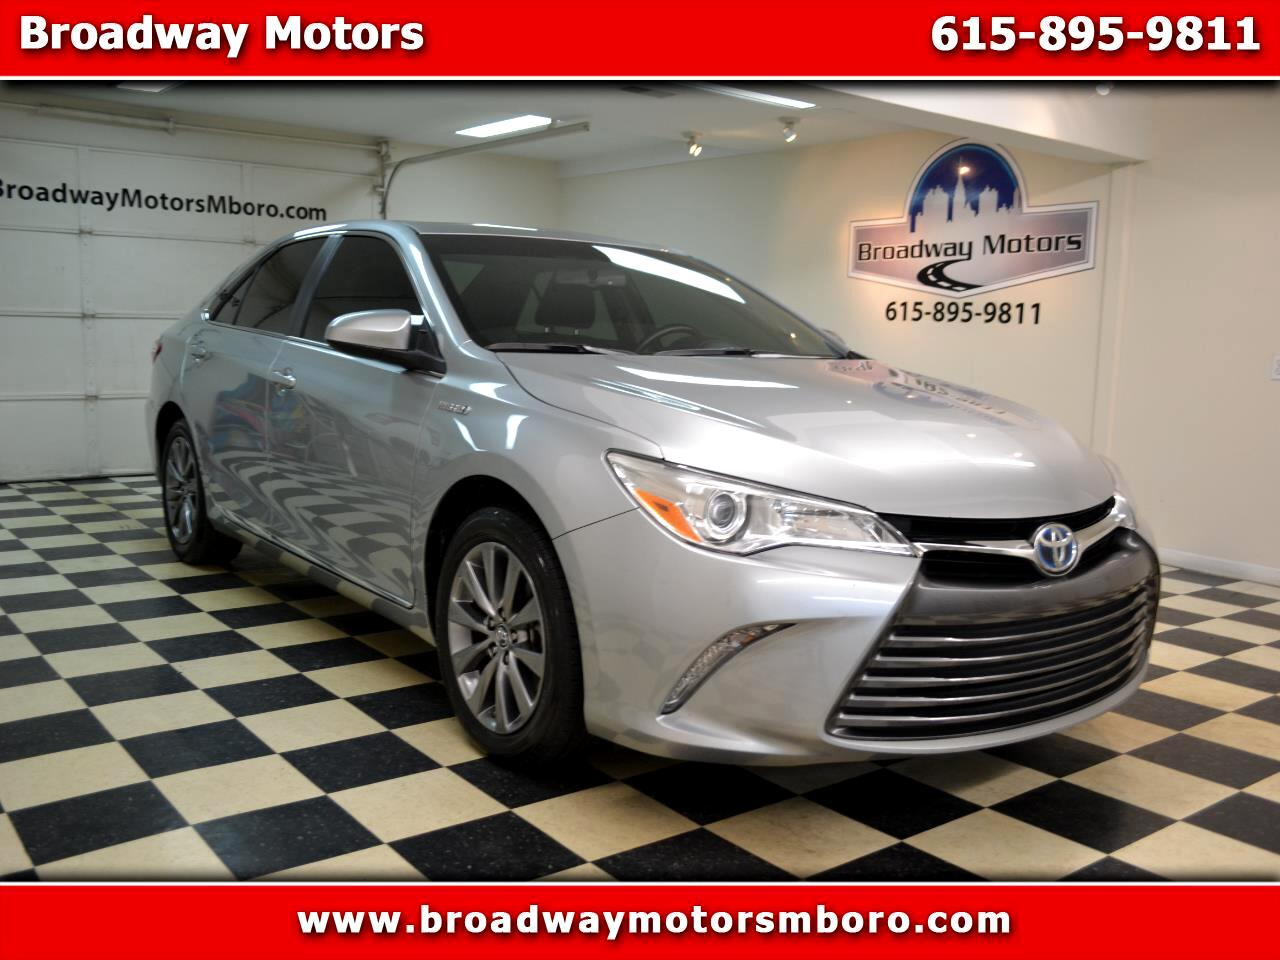 2015 Toyota Camry Hybrid 4dr Sdn XLE (Natl) *Ltd Avail*